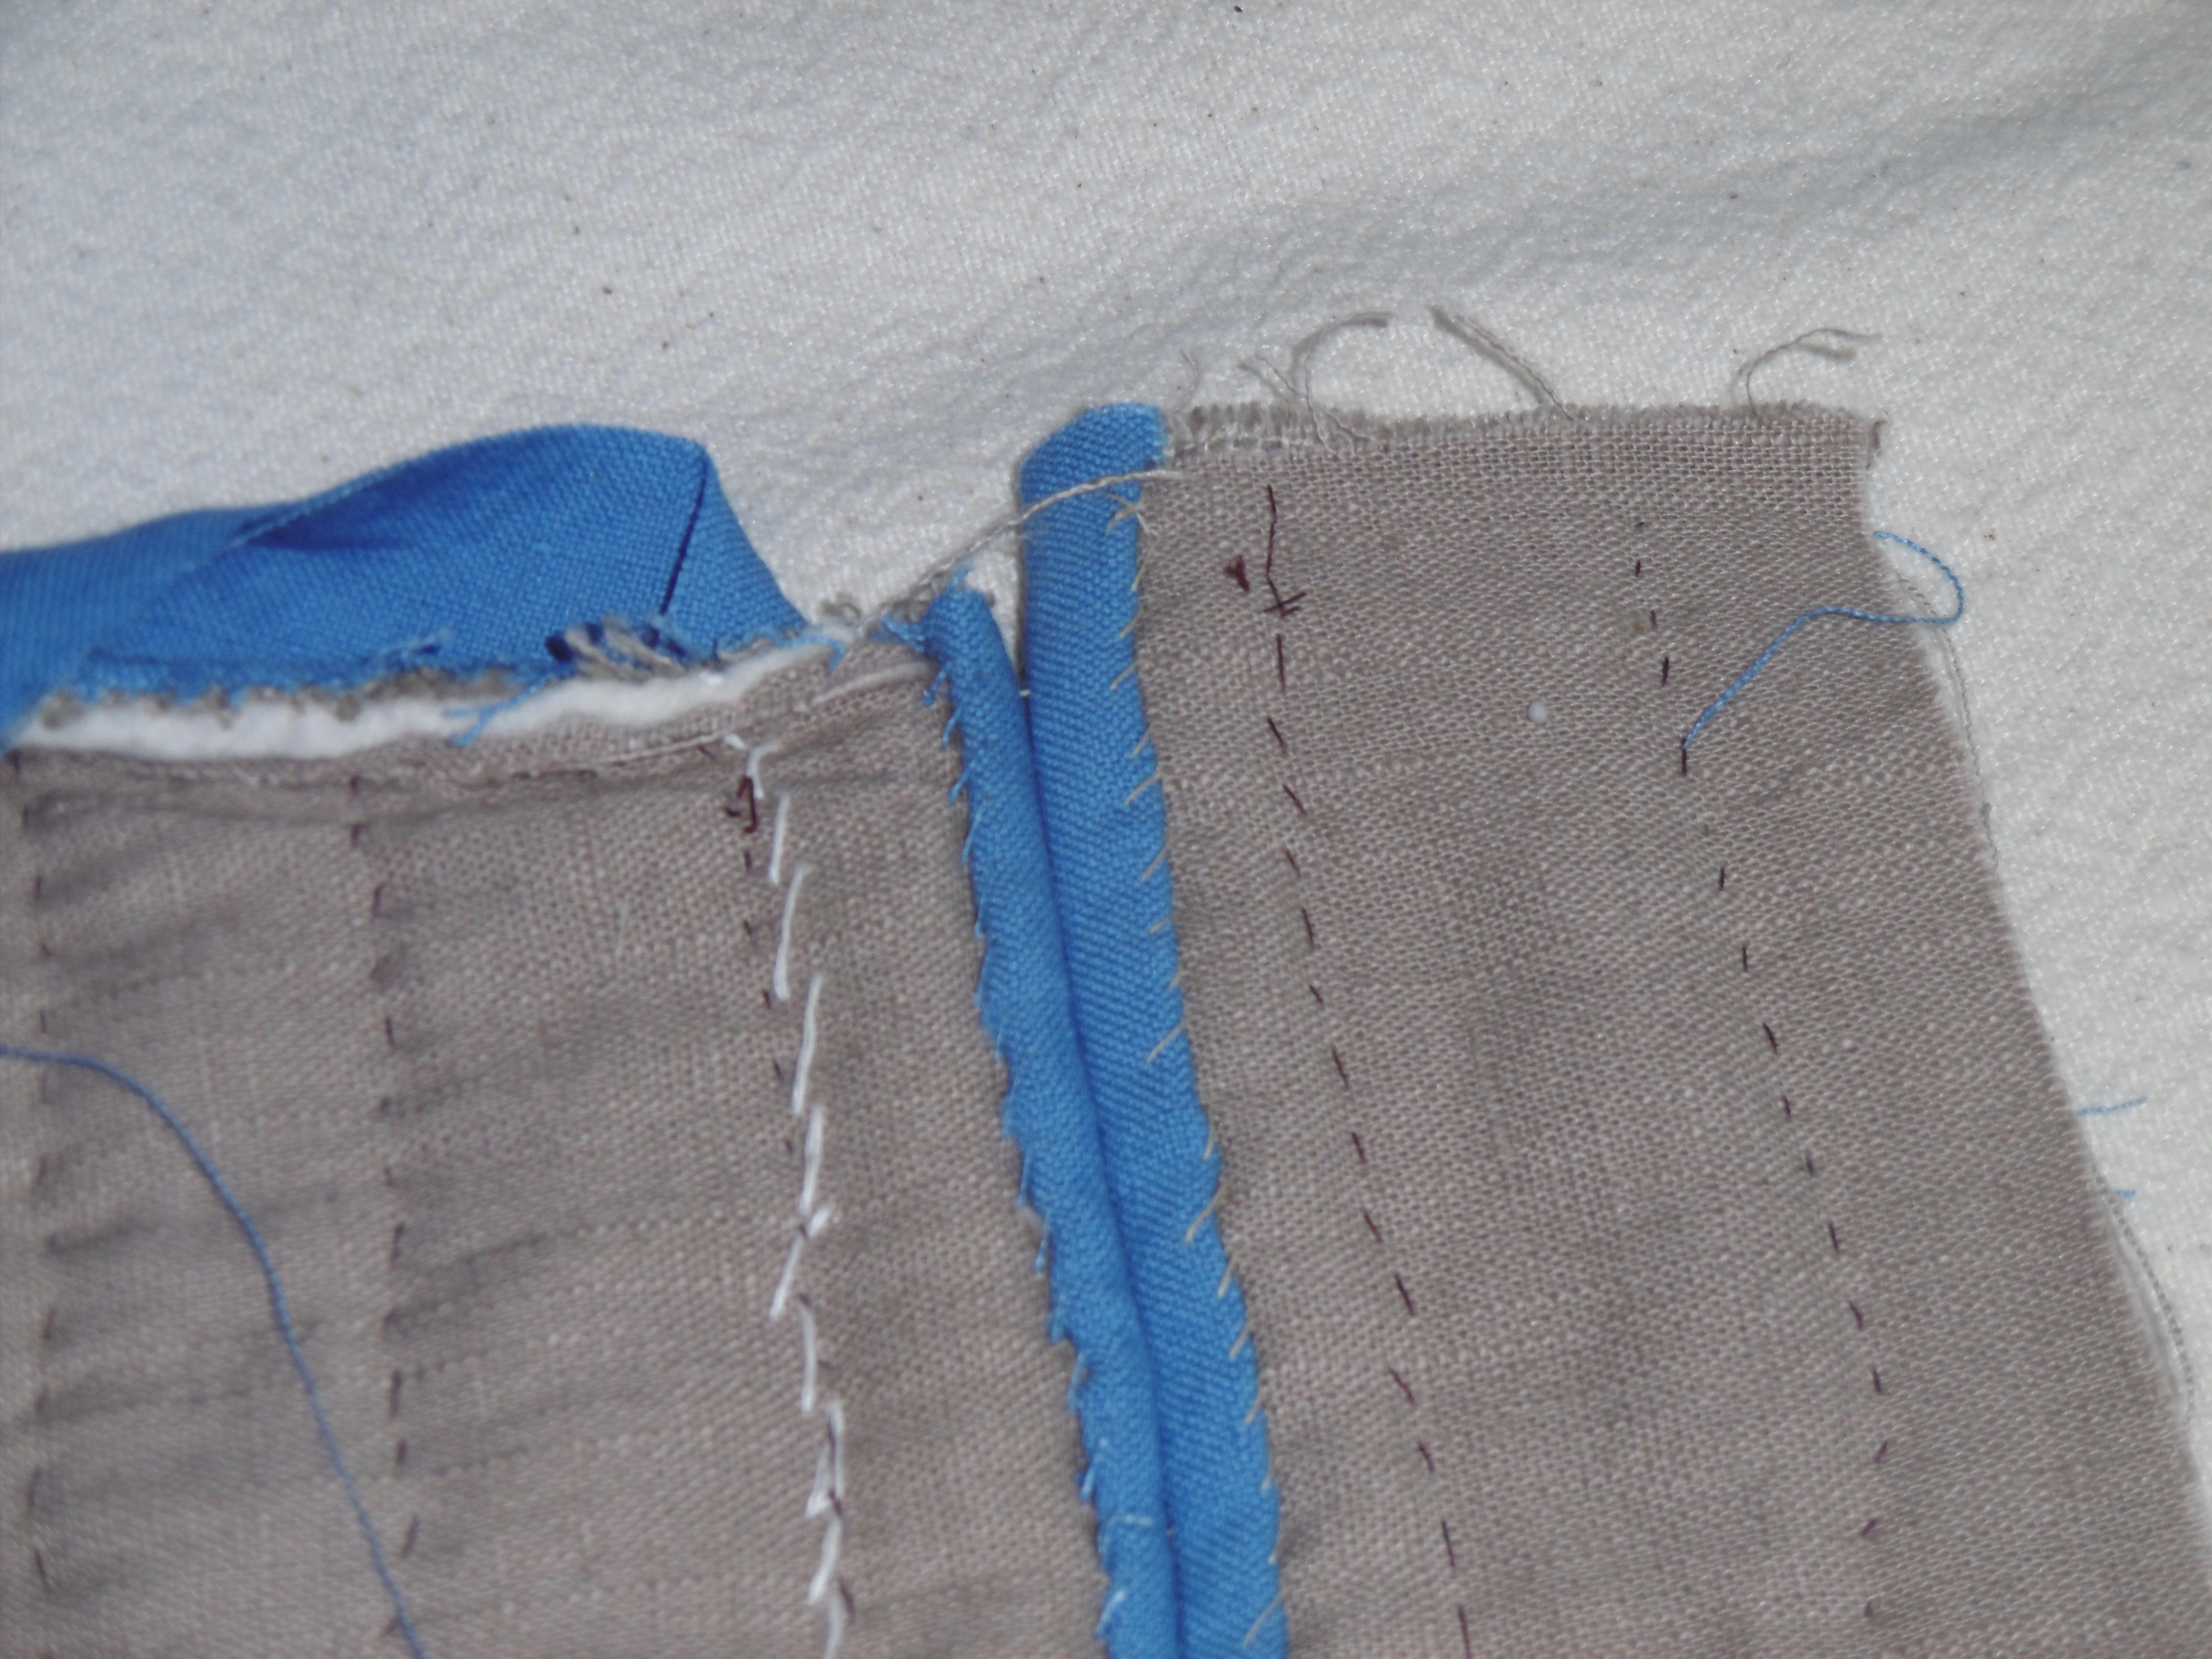 Detail of an unfinished sleeve of a quilted garment